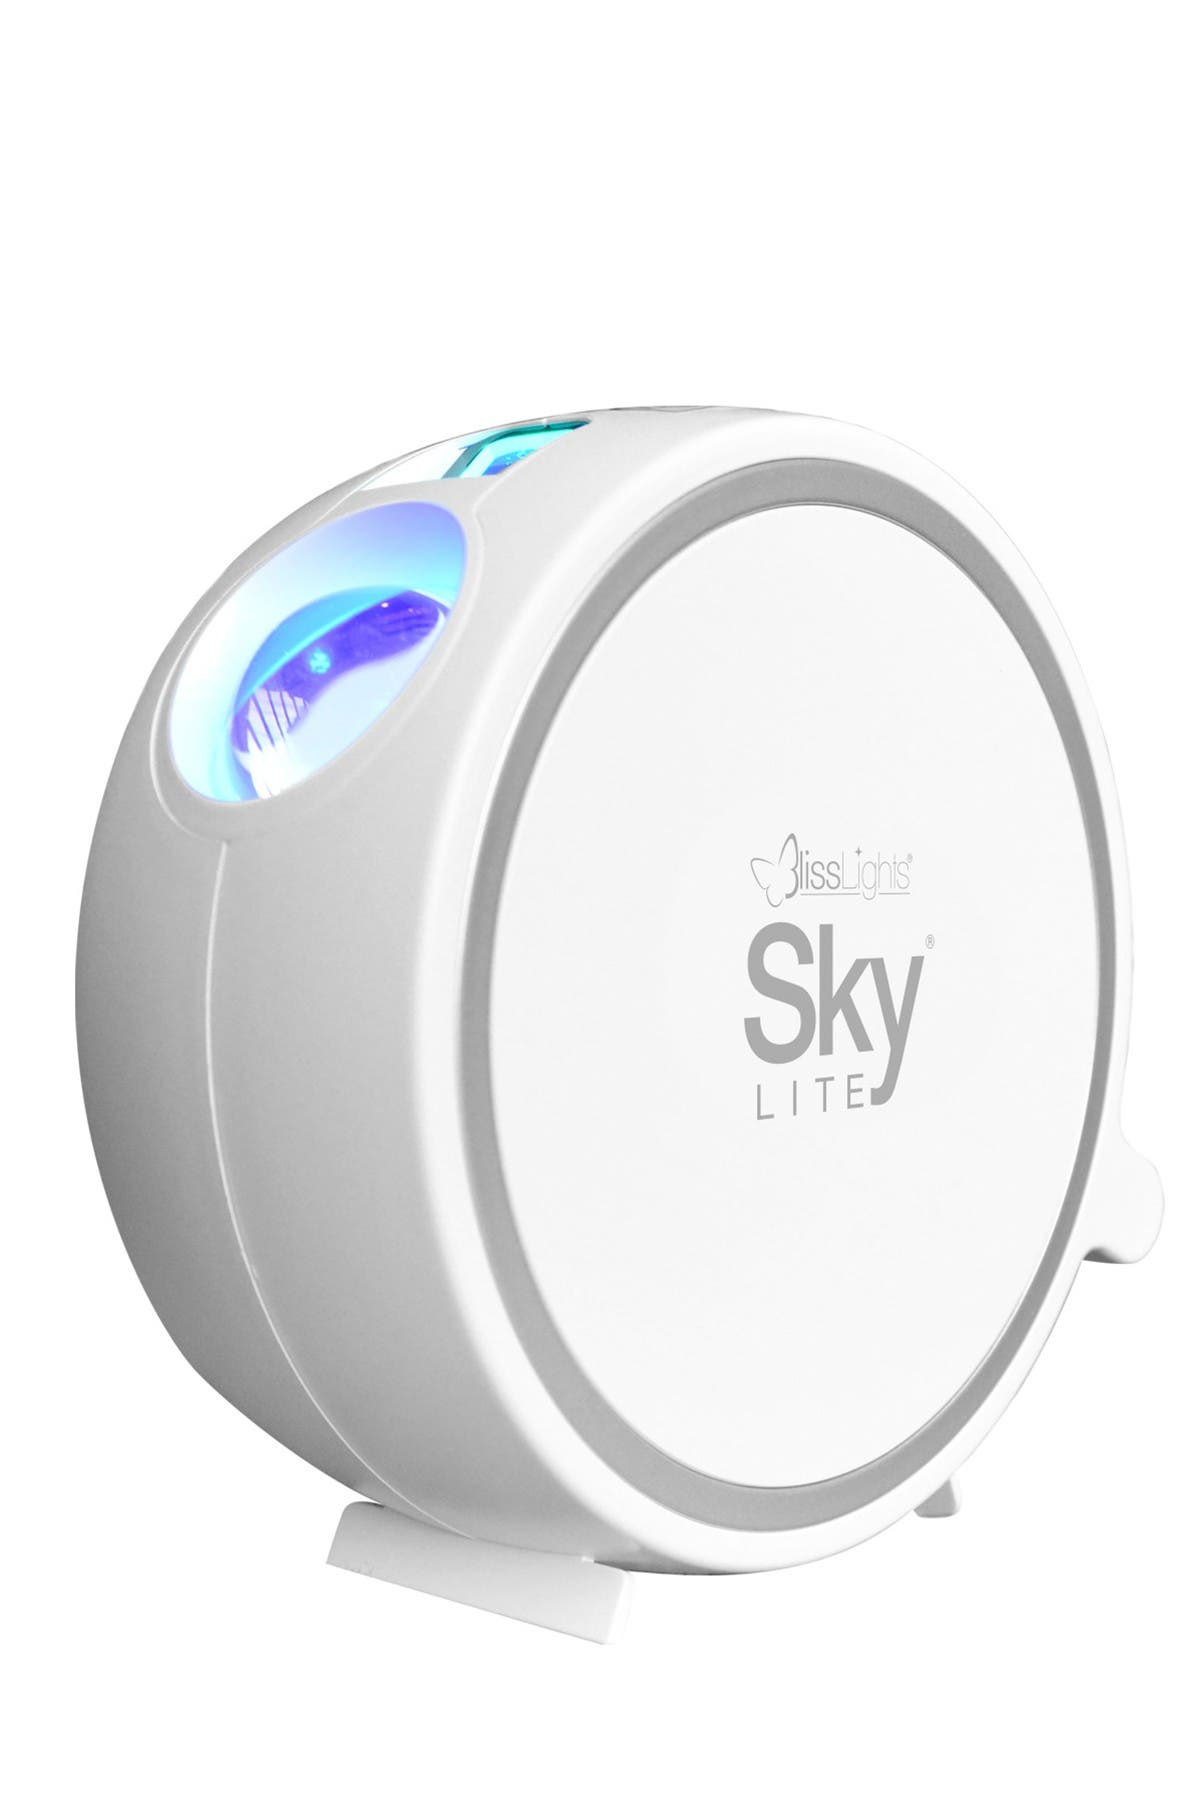 Image of BLISS LIGHTS BlissLights Sky Lite - Laser Projector with LED Nebula Cloud for Game Rooms, Home Theater, or Night Light Ambiance - Green